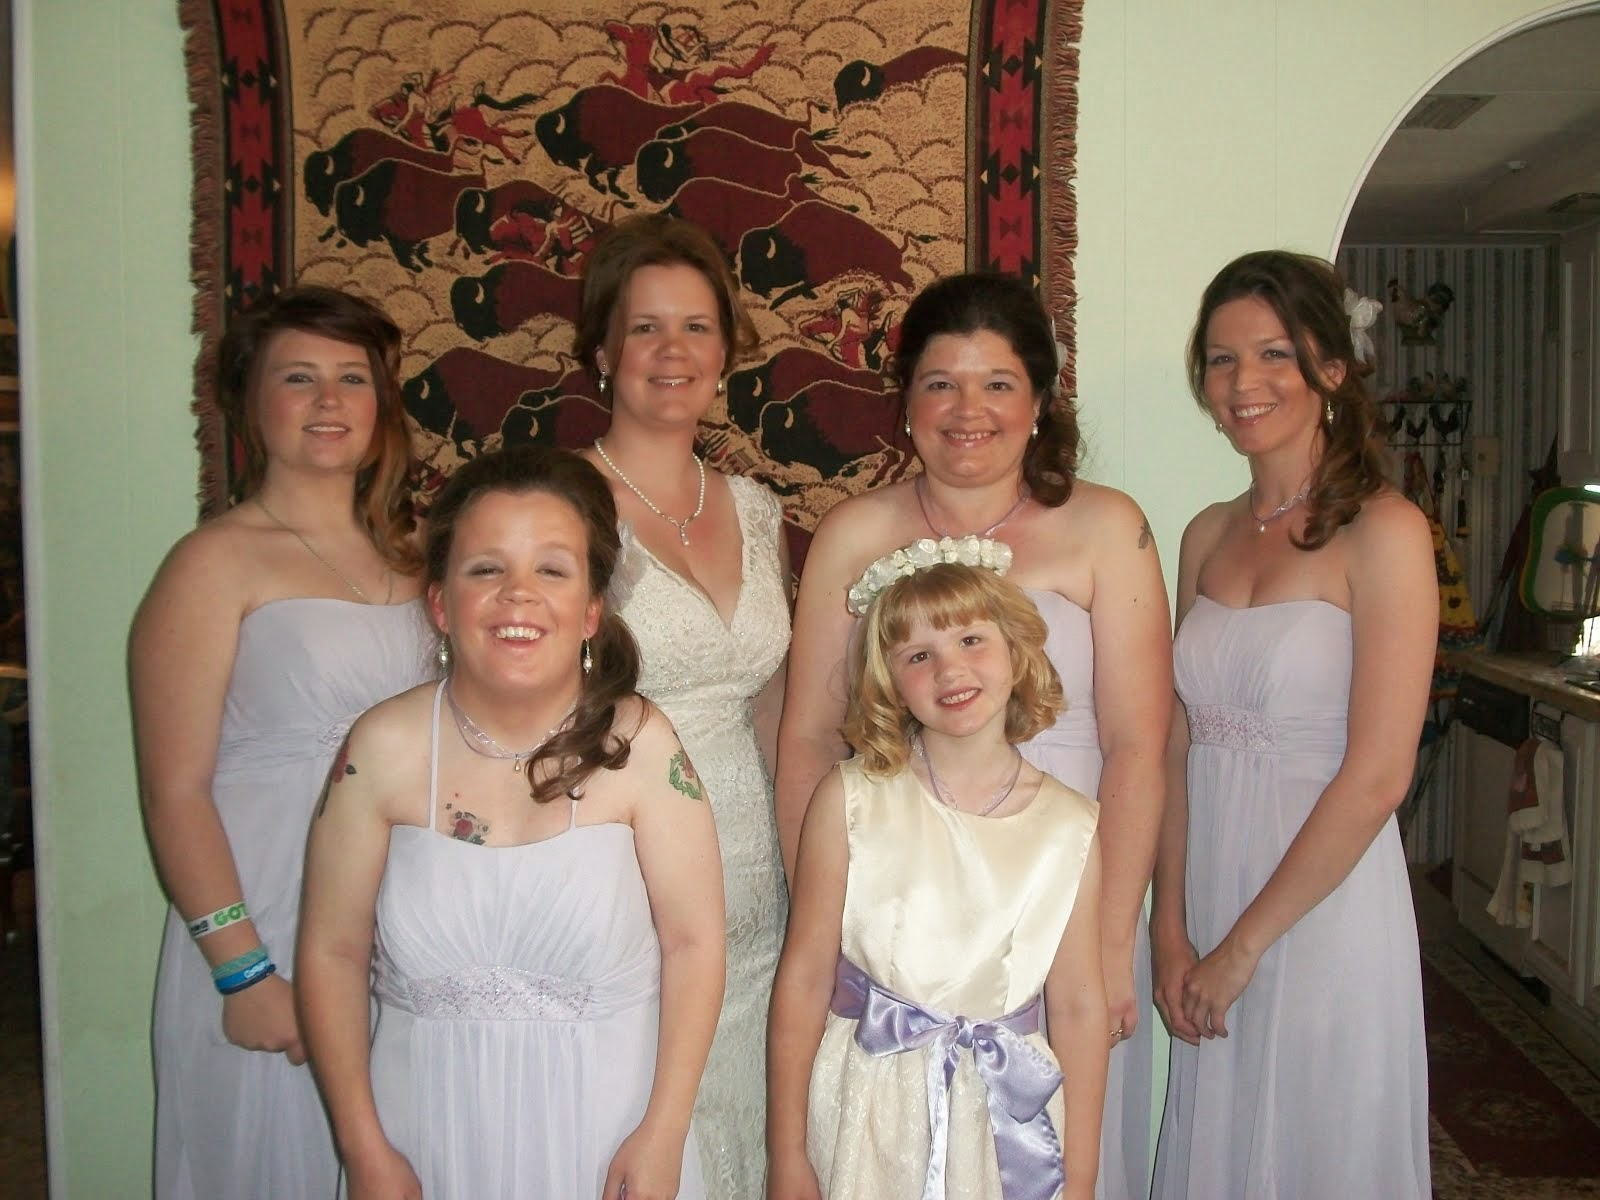 The Bride and her attendants (Left to Right) Leeann, Sara, Shawna, Cassie.  Sandy and Eden in front